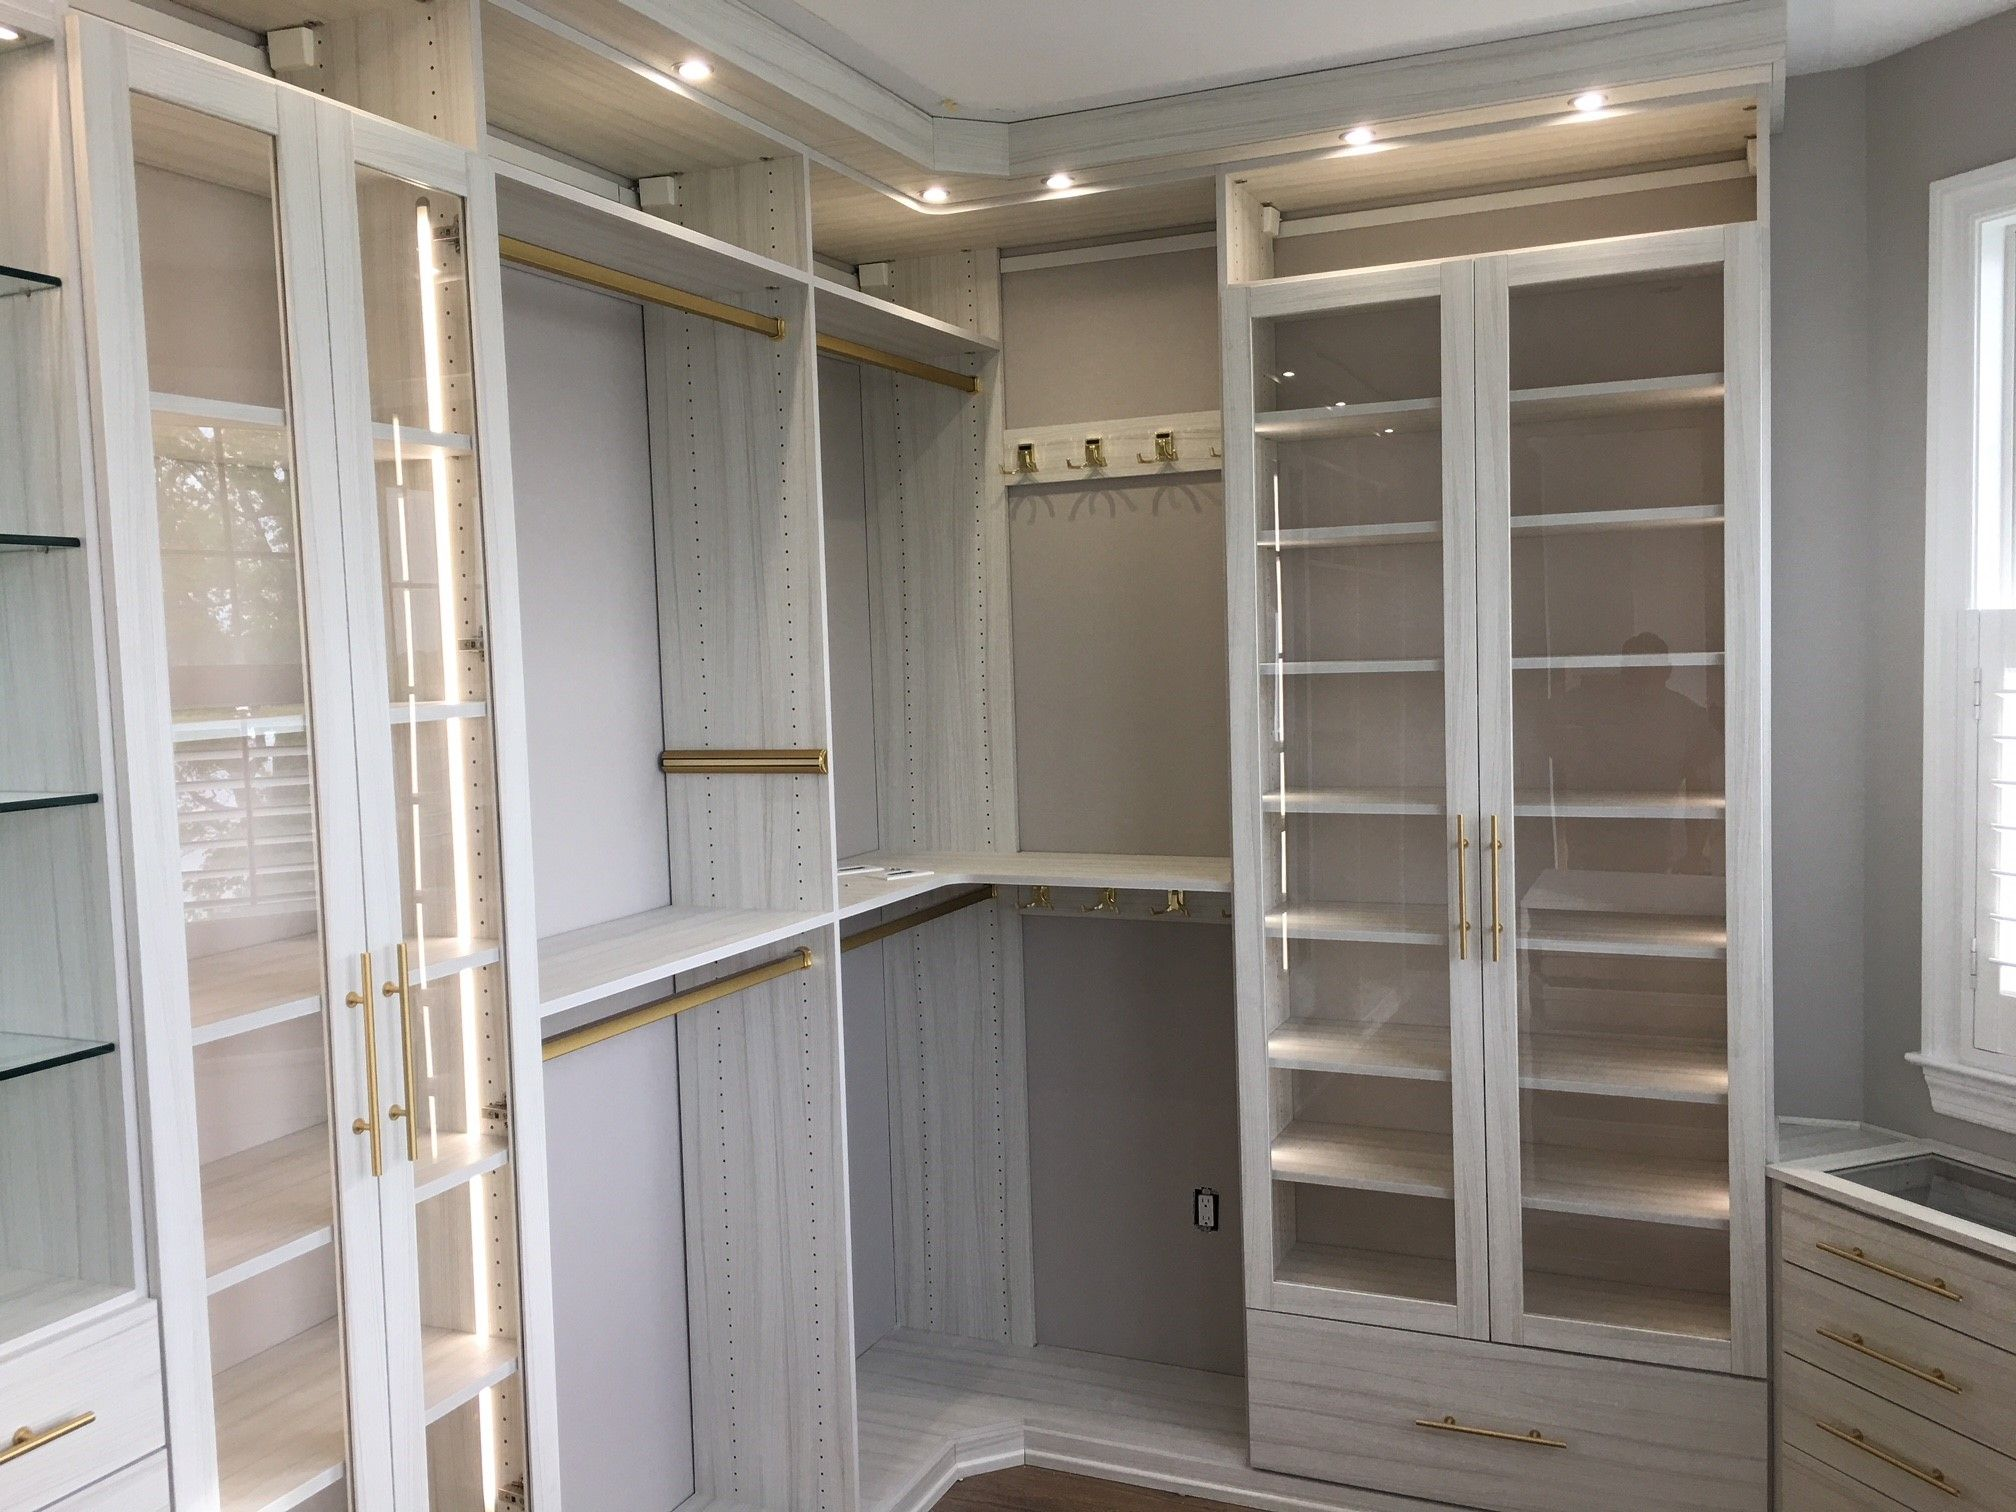 California Closets Luxe Walk In Tesoro Finish Tuscan Moon Brass Gold Lews Hardware Design Consultant Kristen Mille California Closets Closet Designs Interior